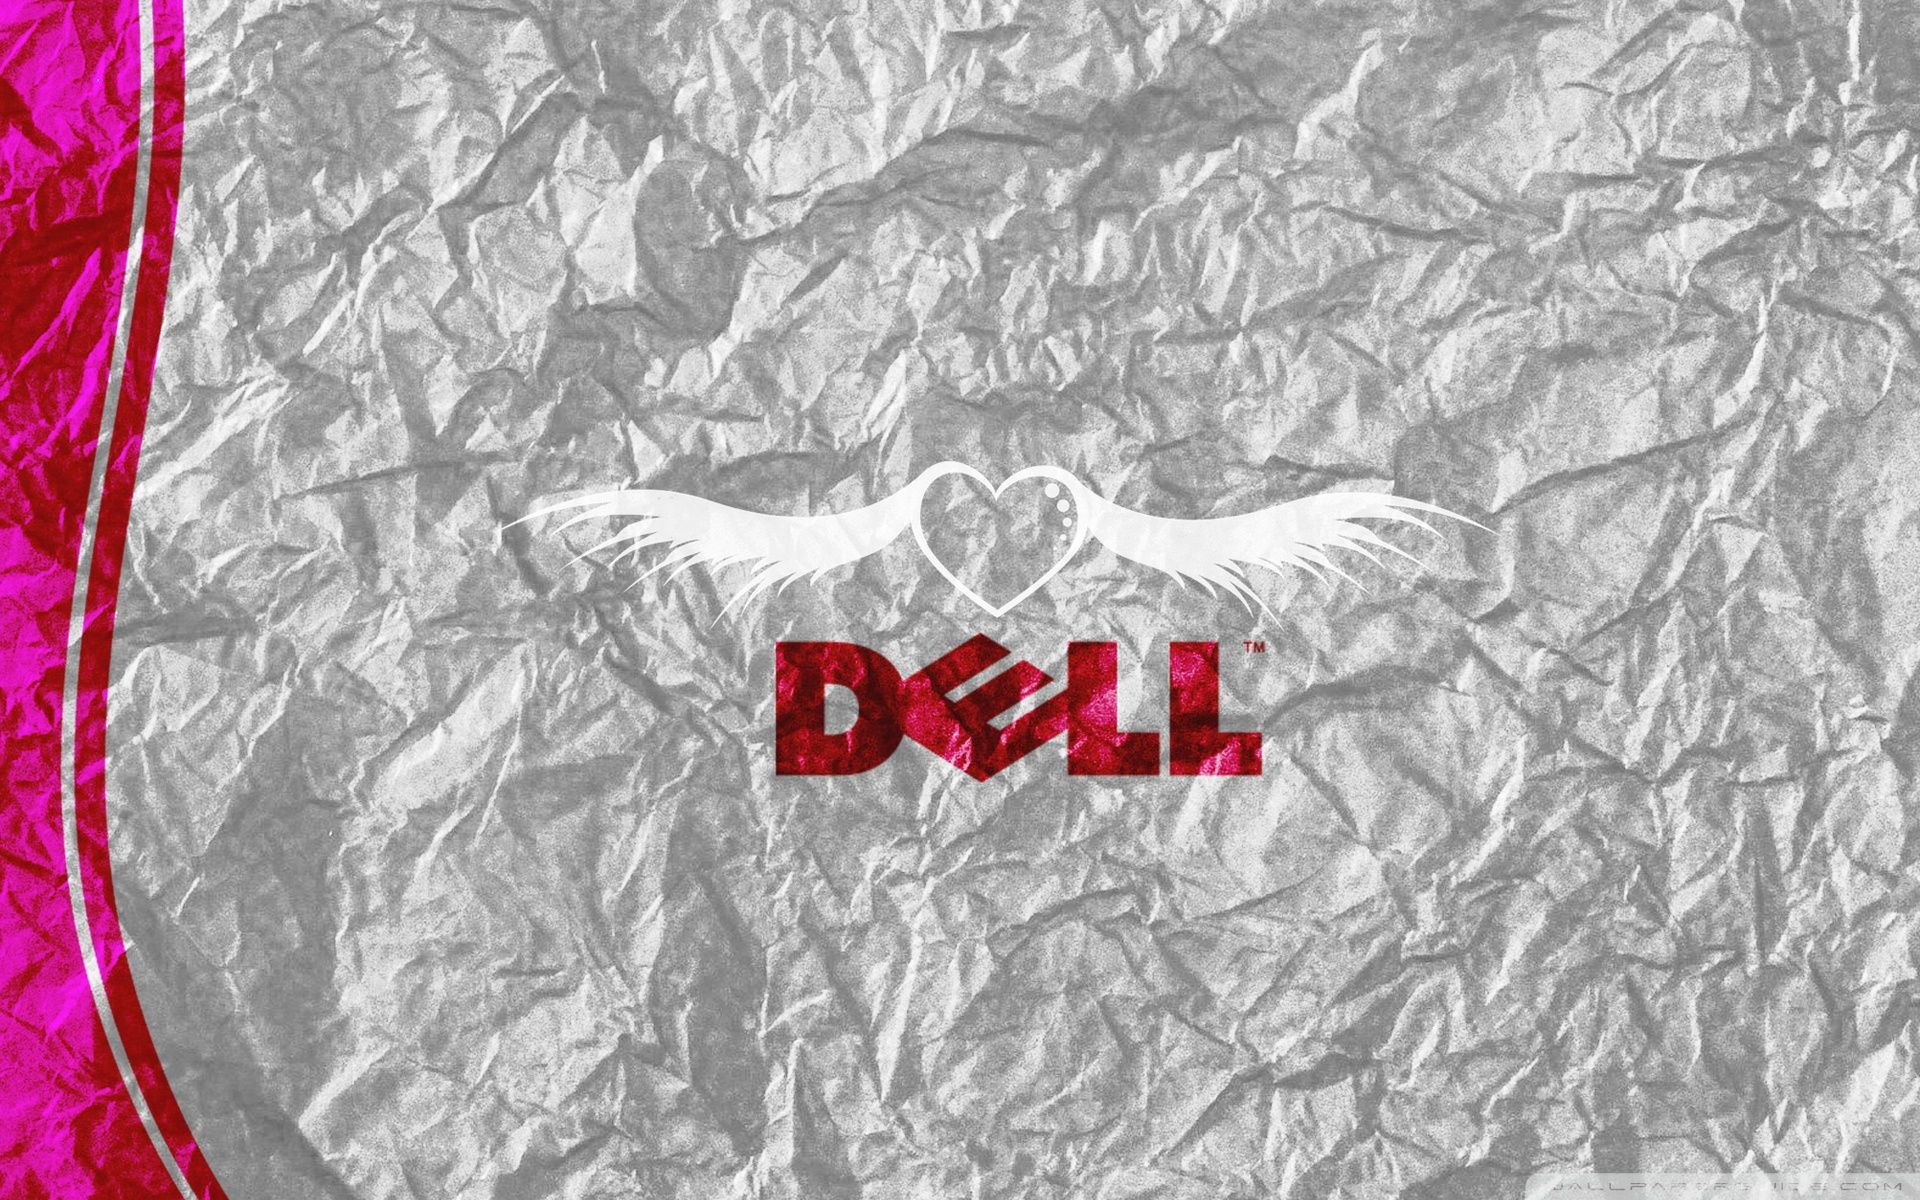 Dell Desktop Wallpapers Wallpaper Wallpaper Background Hd Wallpaper Desktop Wallpaper